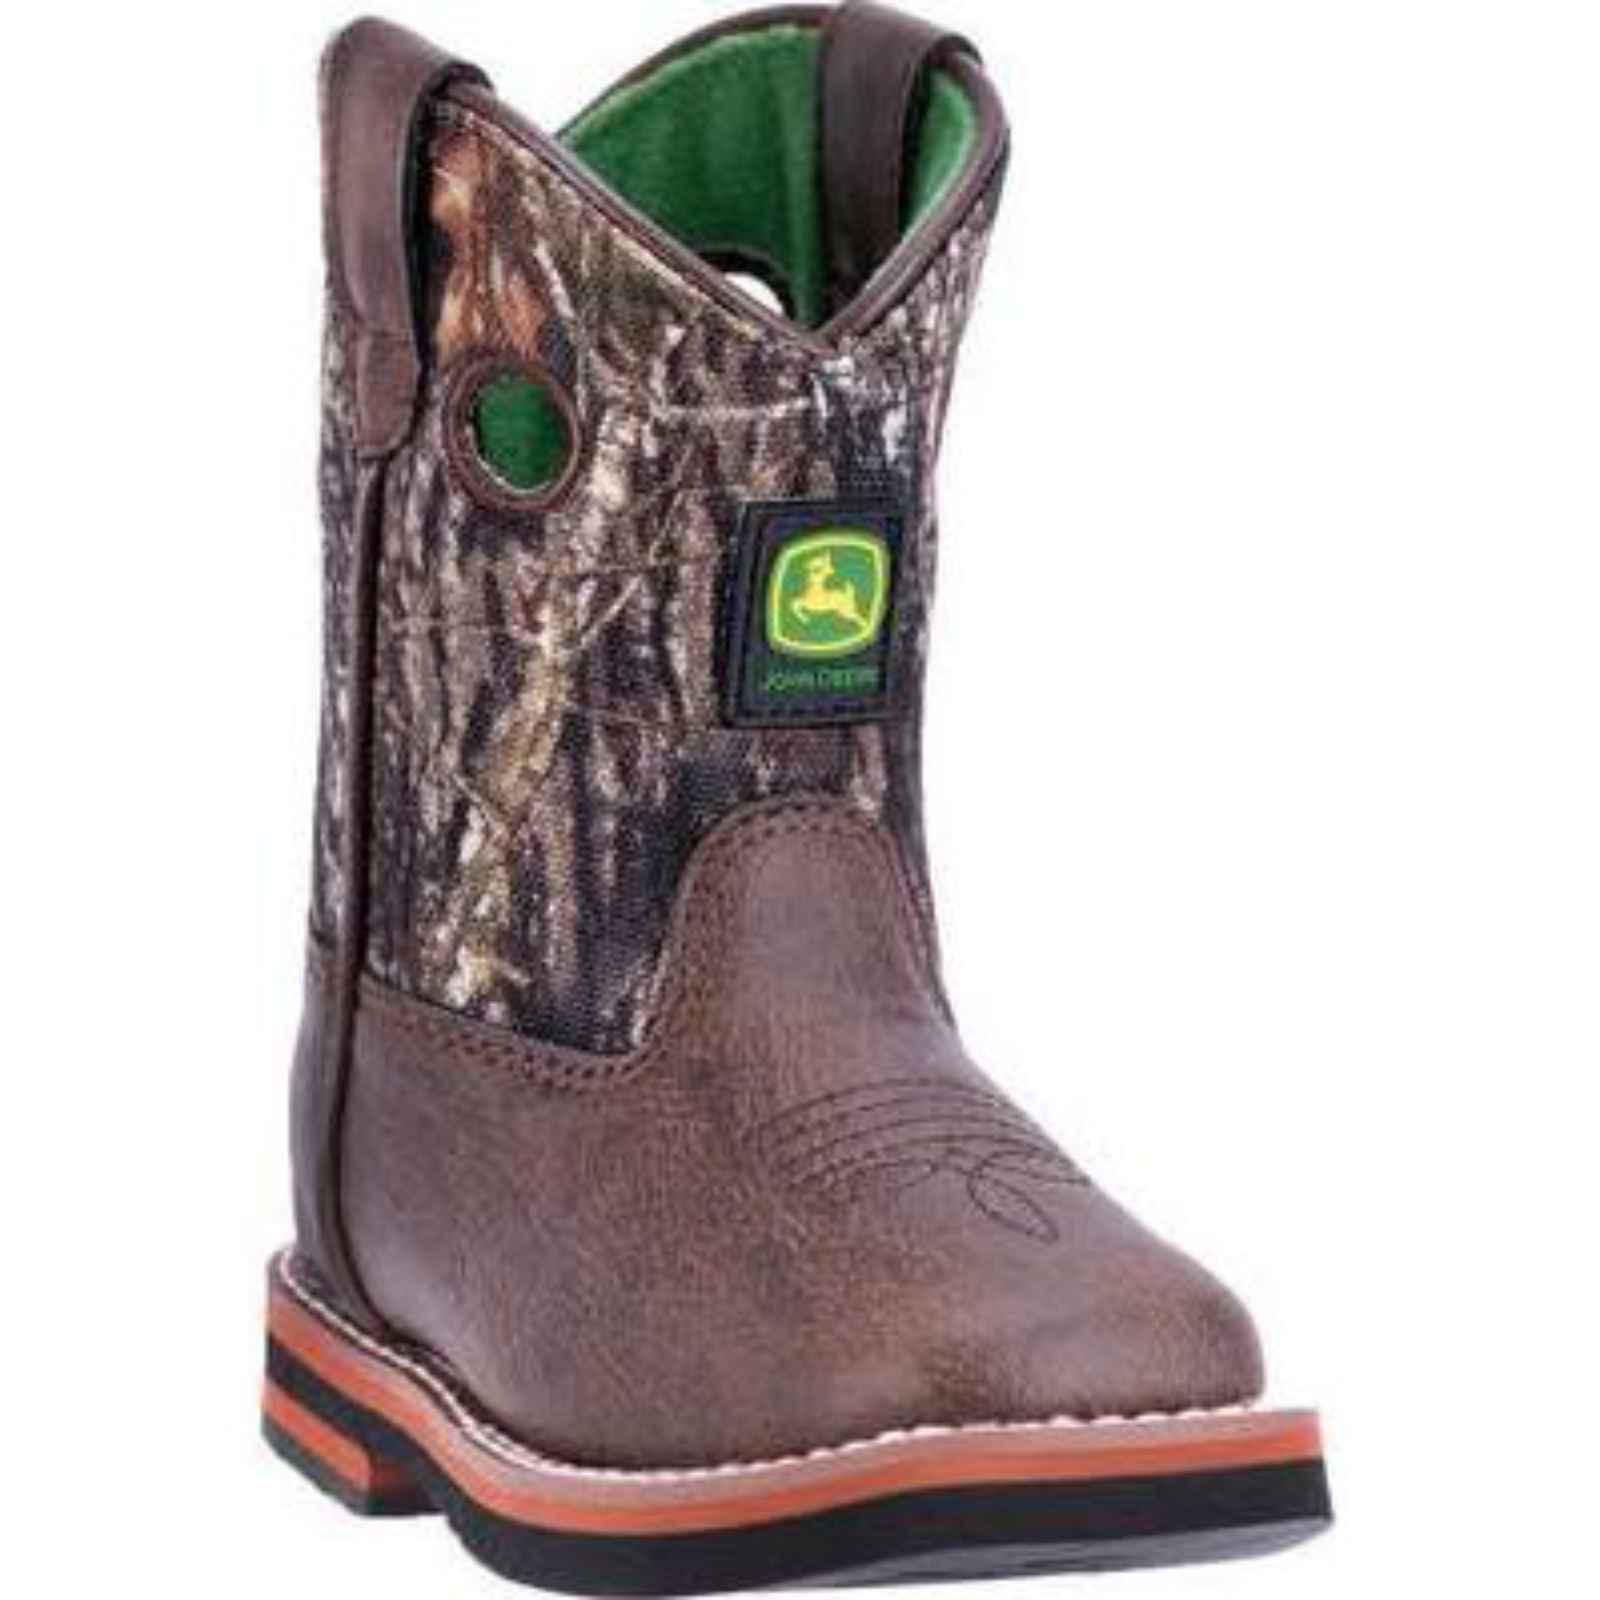 Infant John Deere Boots Everyday Infant Broad Square Toe Boot 1043 by John Deere